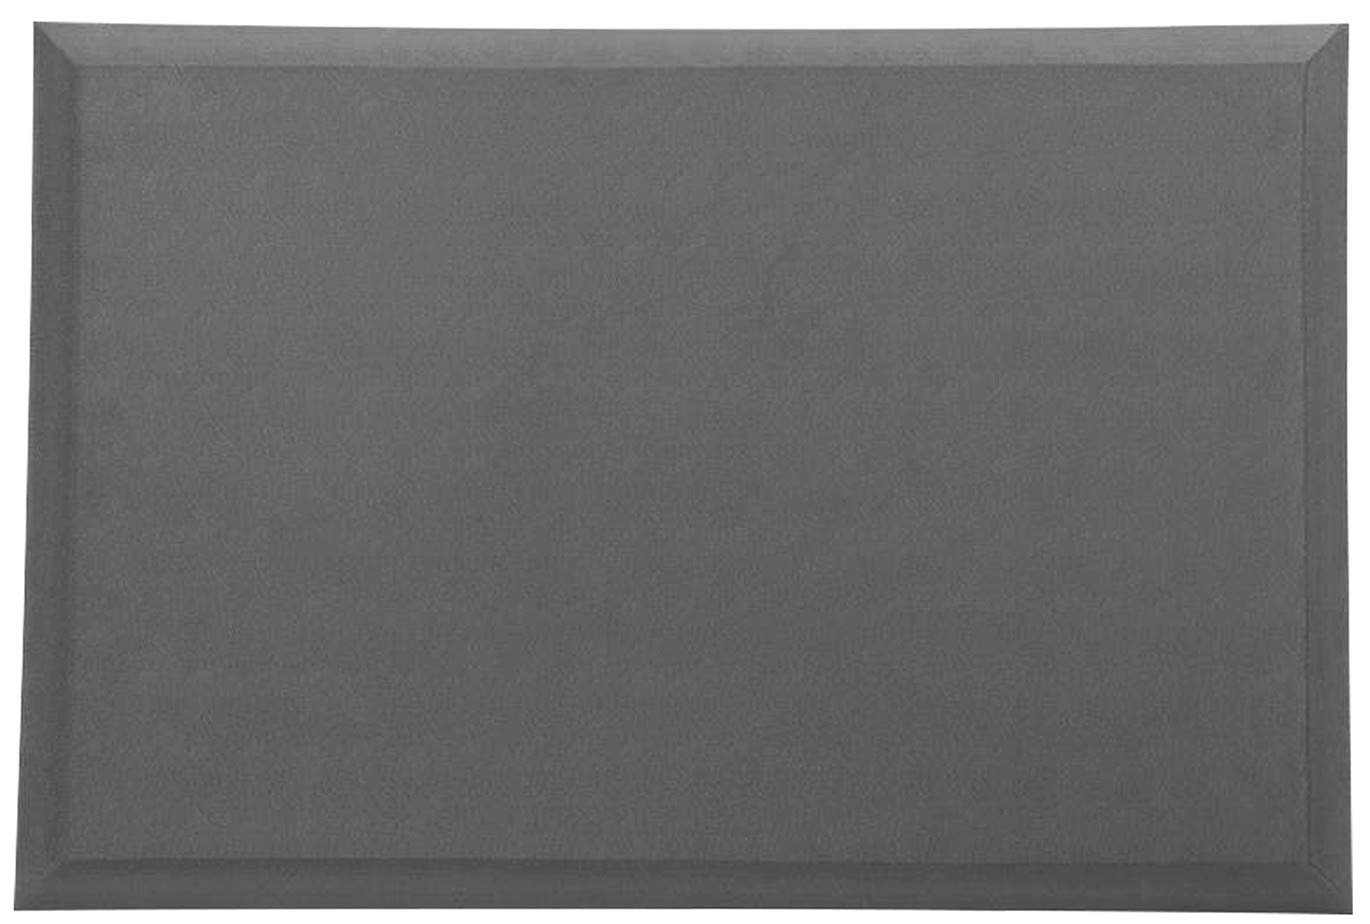 Lemebo Kitchen and Garages Mat | Anti Fatigue Comfort Mat, 4/5 Thick | Ergonomically Engineered, Non-Slip, Waterproof,Eco-Friendly | 24''x35'' - Gray by Lemebo